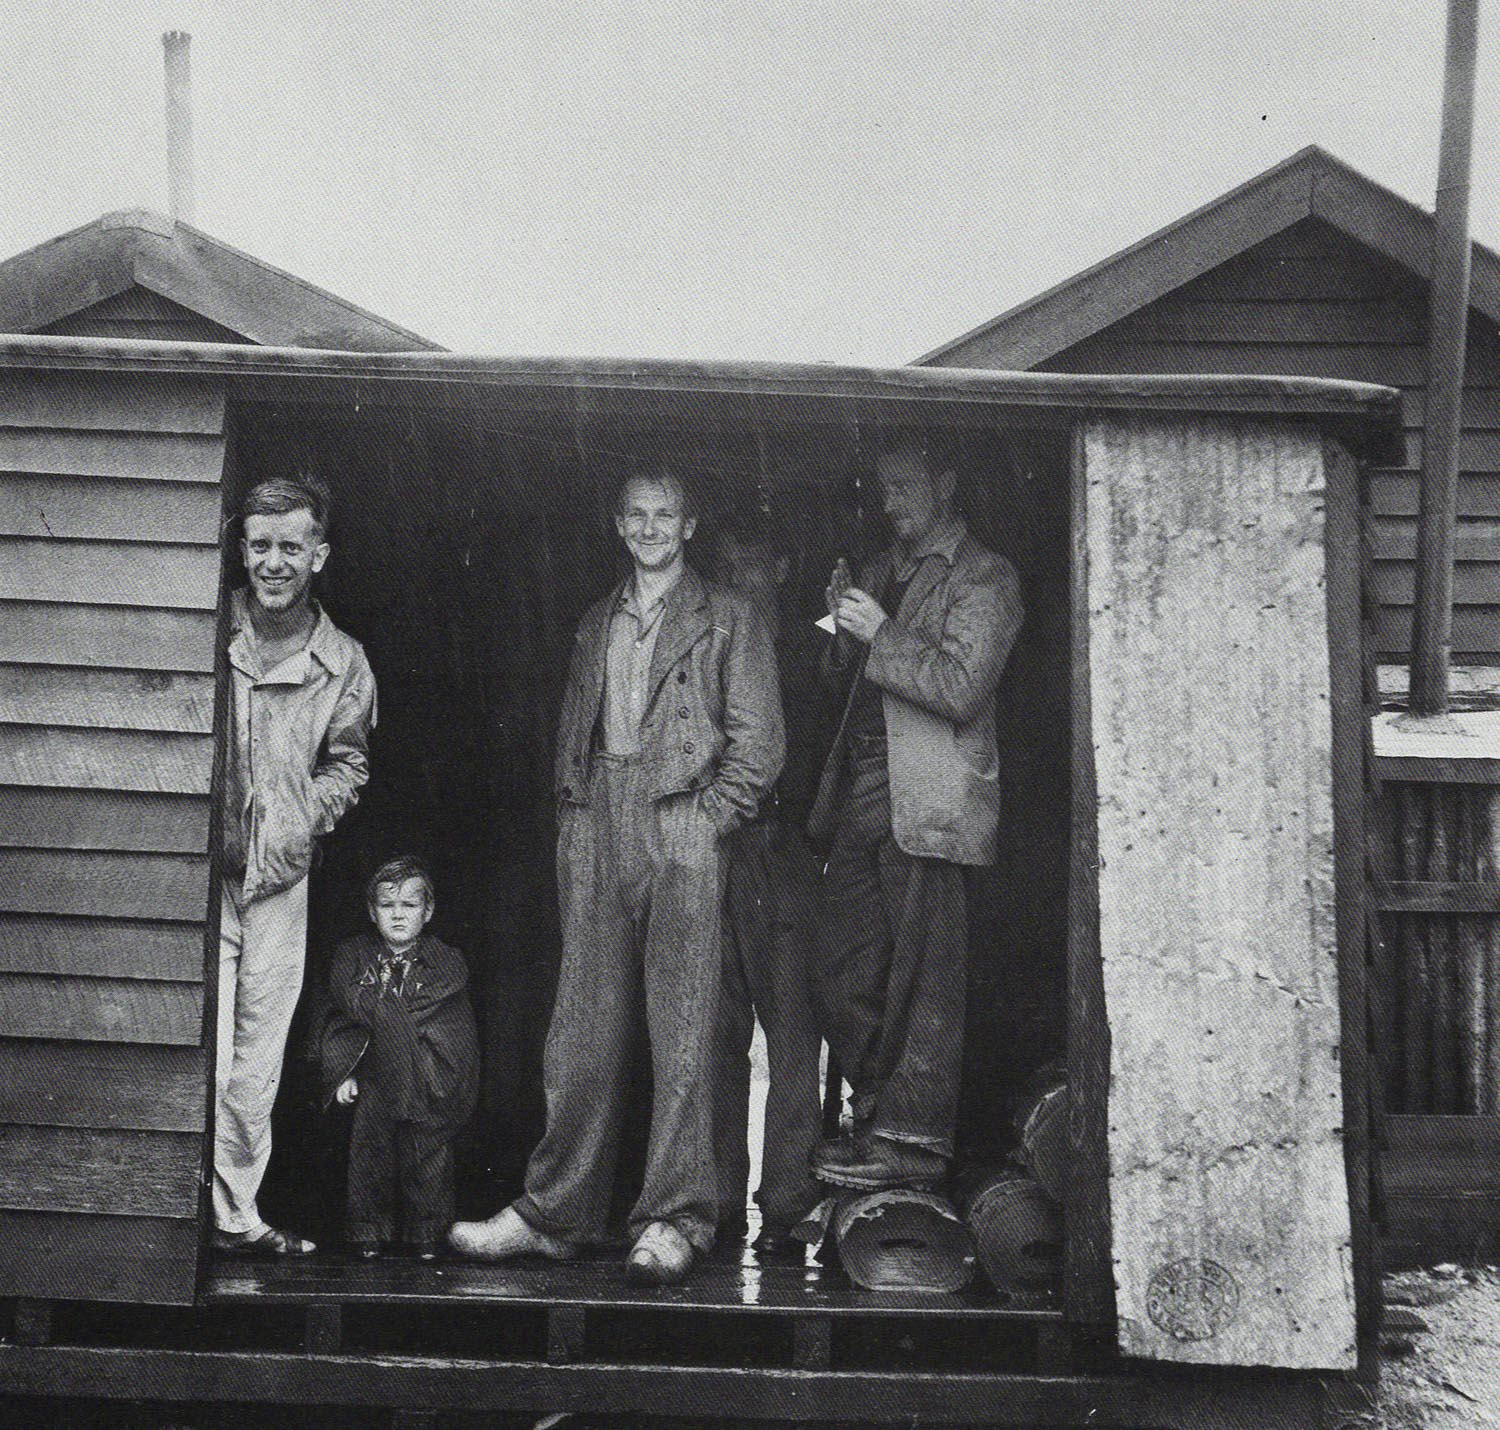 Les Cleveland.  Silver Pine Cutters Sheltering From Rain at Mussell Point, South Westland , 1955.  Witness to Change - Life in New Zealand Photographs 1940-1965 . PhotoForum/Wellington, 1985.